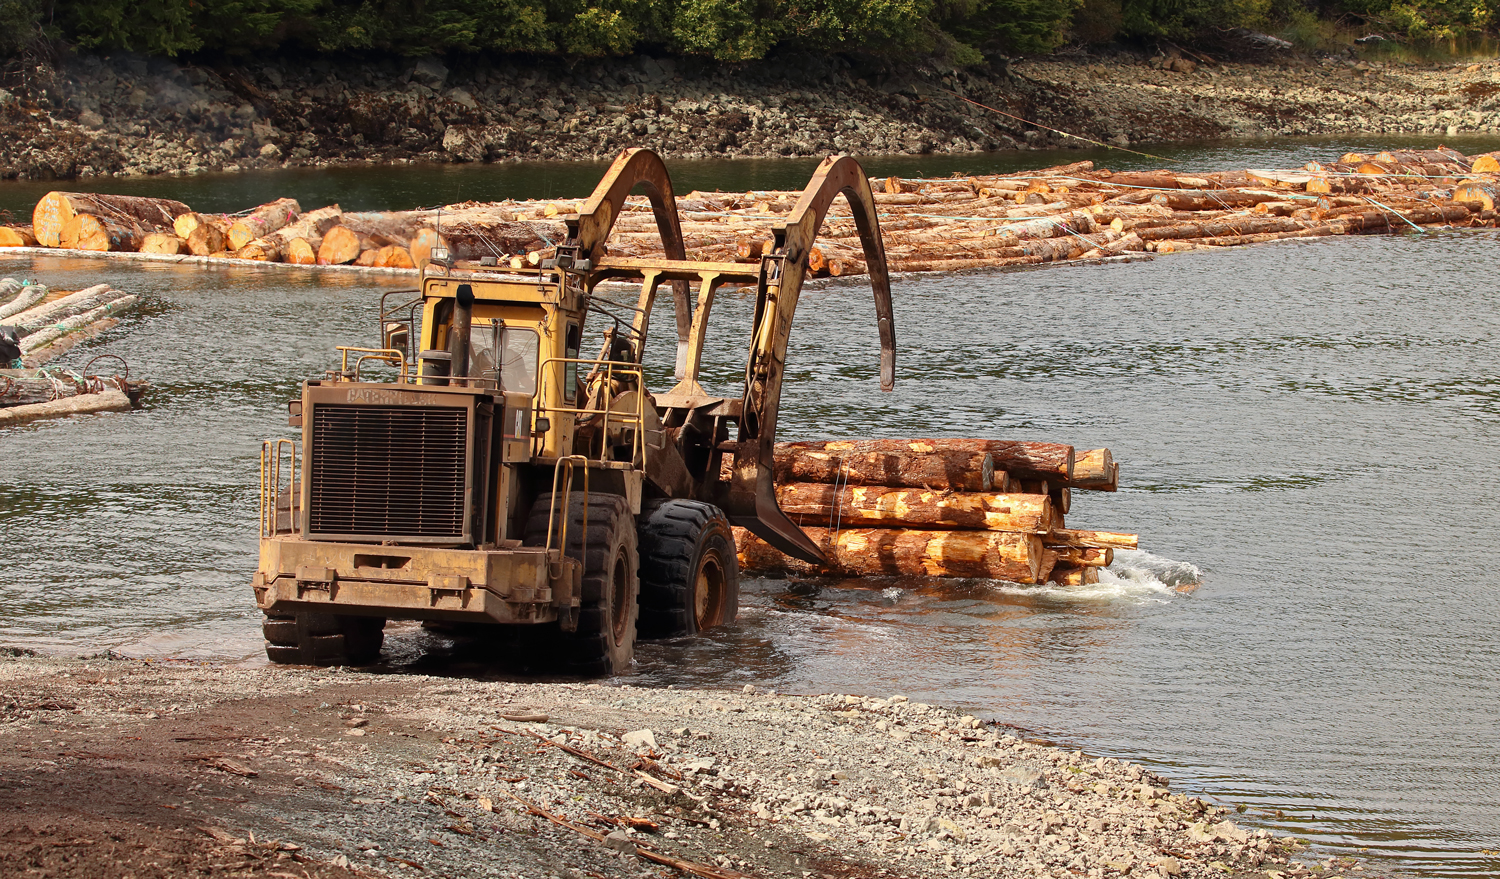 Caterpillar 988F log loader dumping a bundle of logs into the water on Prince of Wales Island in Southeast Alaska